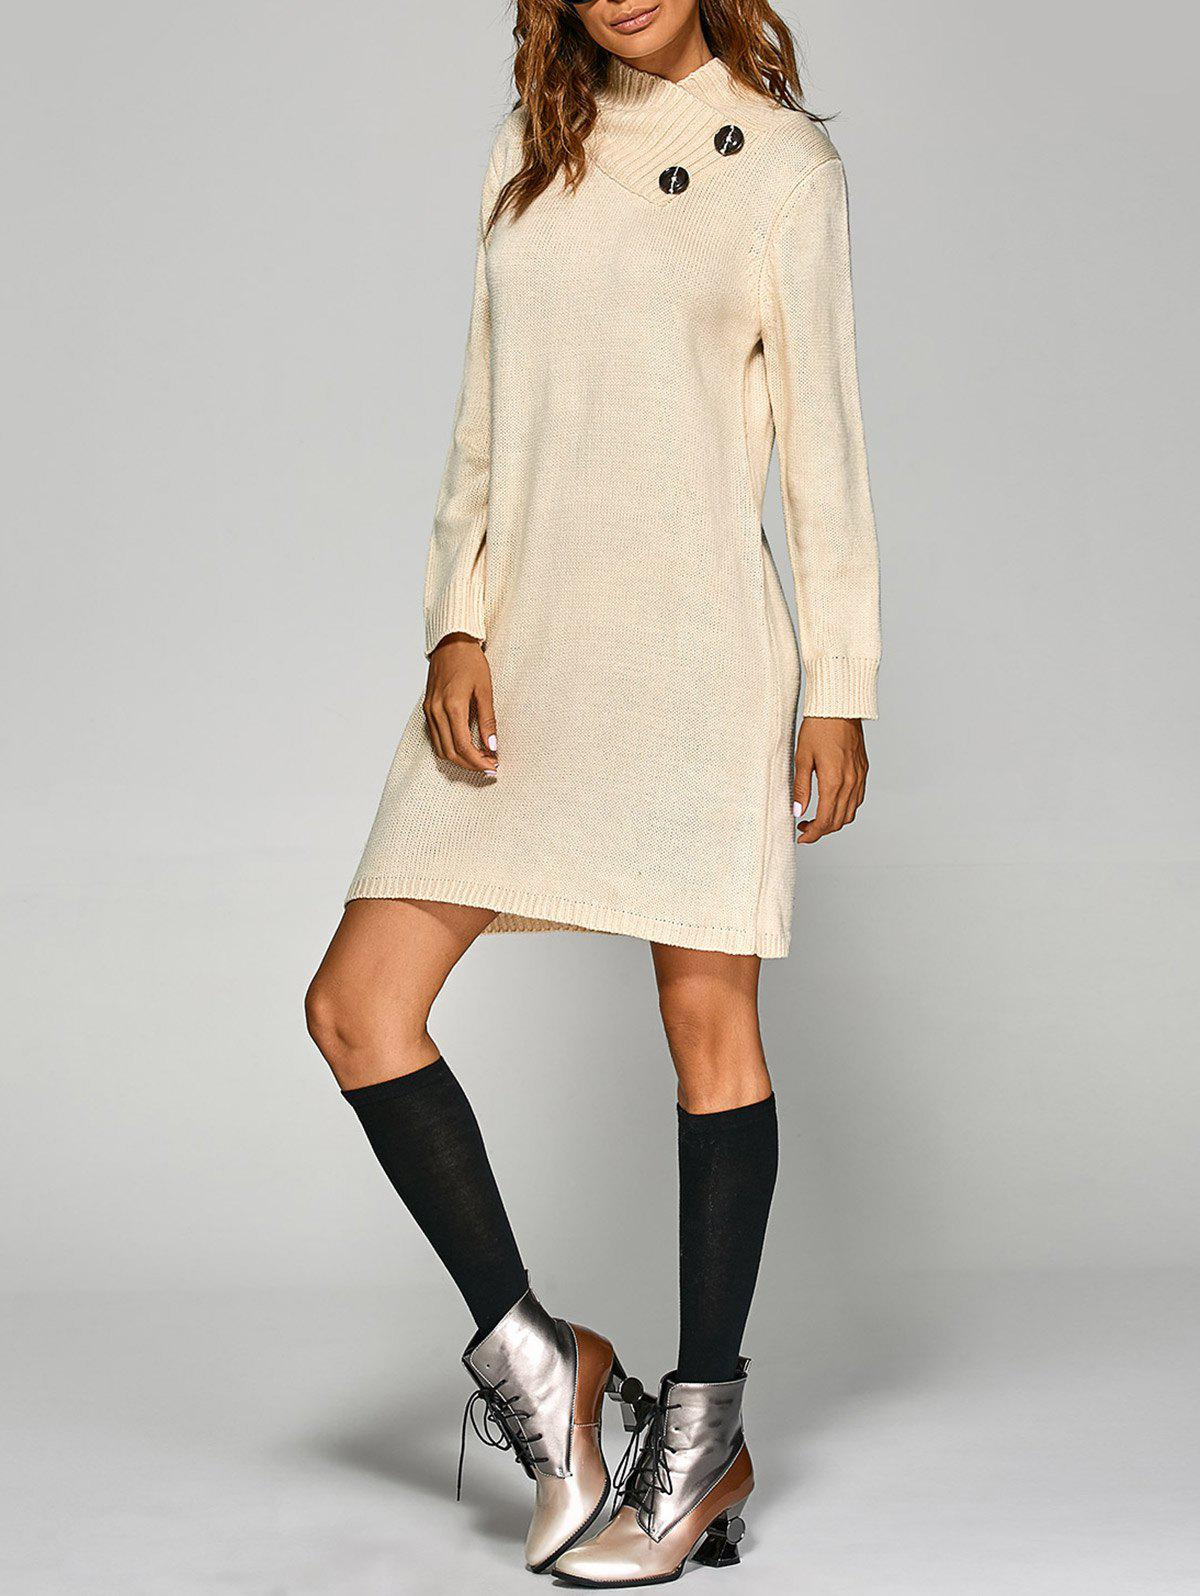 Tunic Knitted Long Sleeve DressWOMEN<br><br>Size: ONE SIZE; Color: OFF-WHITE; Style: Casual; Material: Acrylic; Silhouette: Straight; Dresses Length: Mini; Neckline: High Neck; Sleeve Length: Long Sleeves; Embellishment: Button; Pattern Type: Solid; With Belt: No; Season: Fall; Weight: 0.580kg; Package Contents: 1 x Dress;